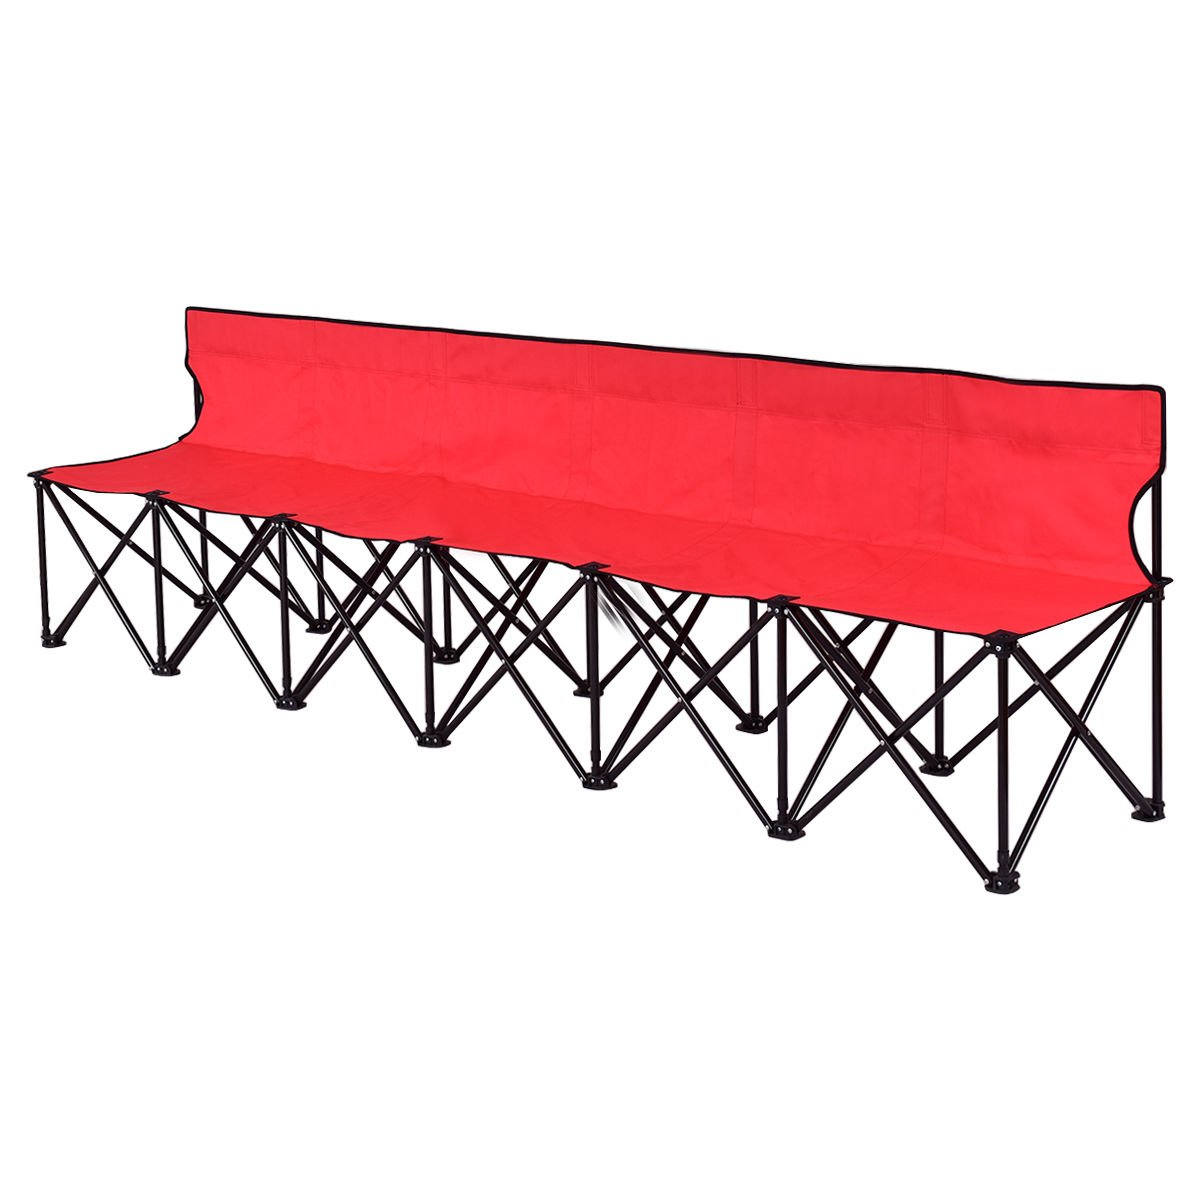 Portable 6 Seats Folding Chair Bench Outdoor Sports Camping W/Carrying Bag Red